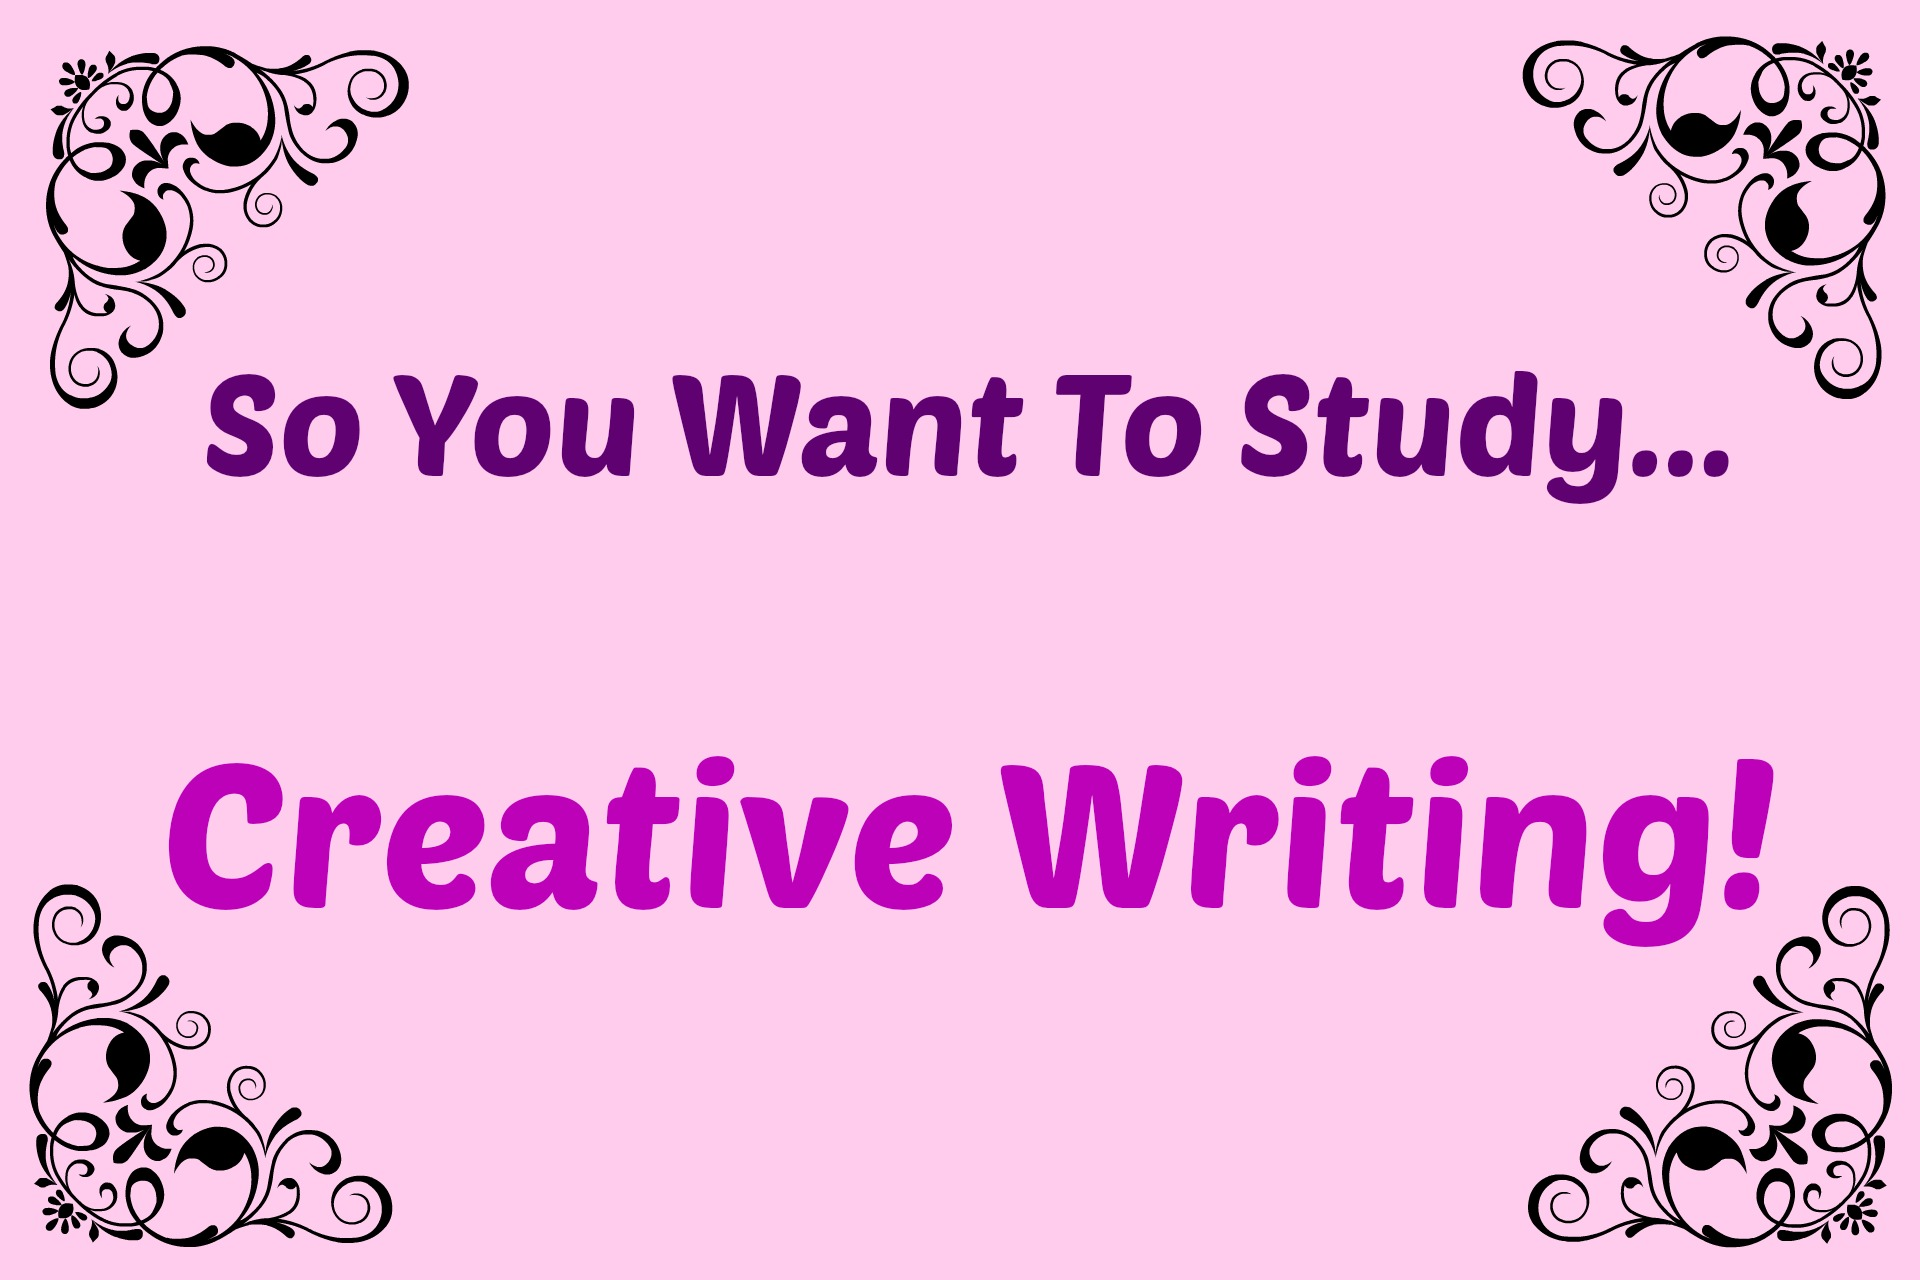 Creative Writing subjects to major in college